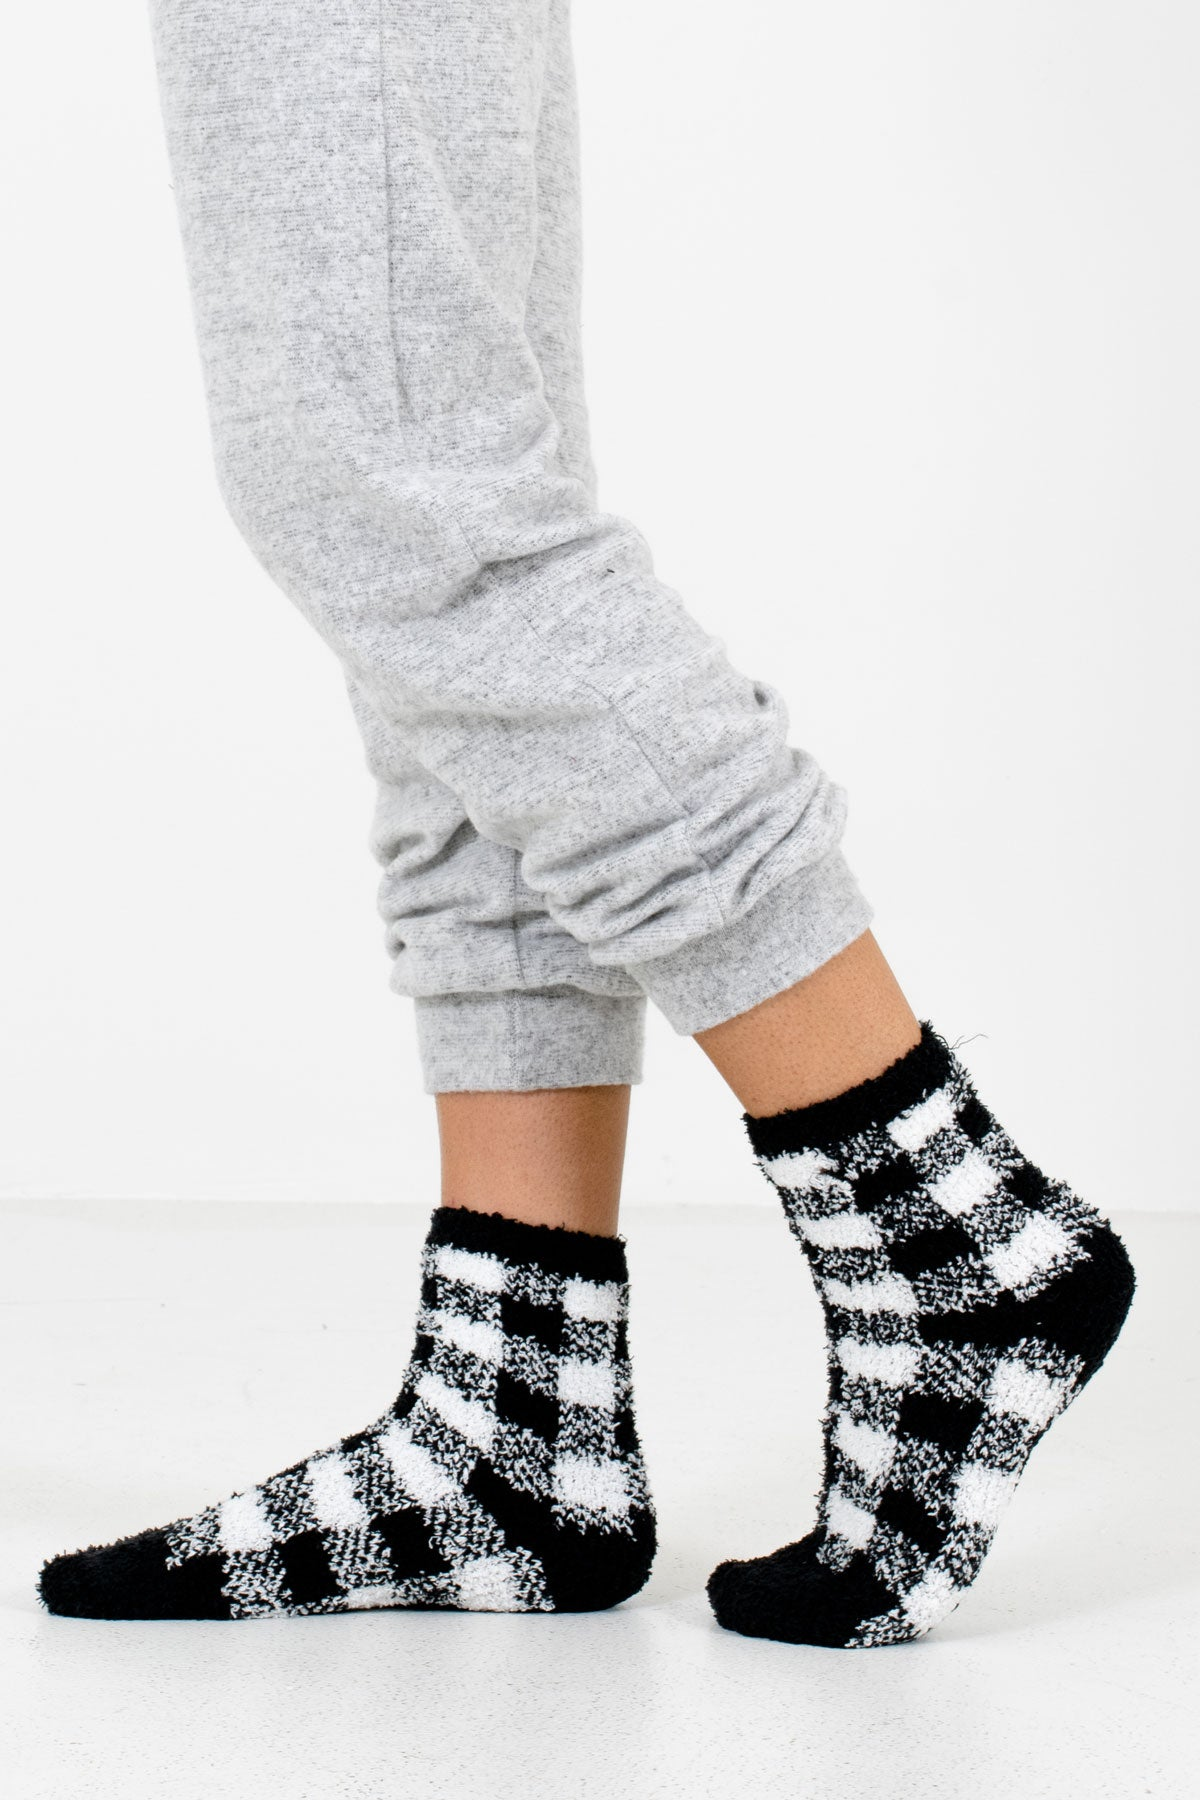 Black and White Plaid Patterned Boutique Socks for Women